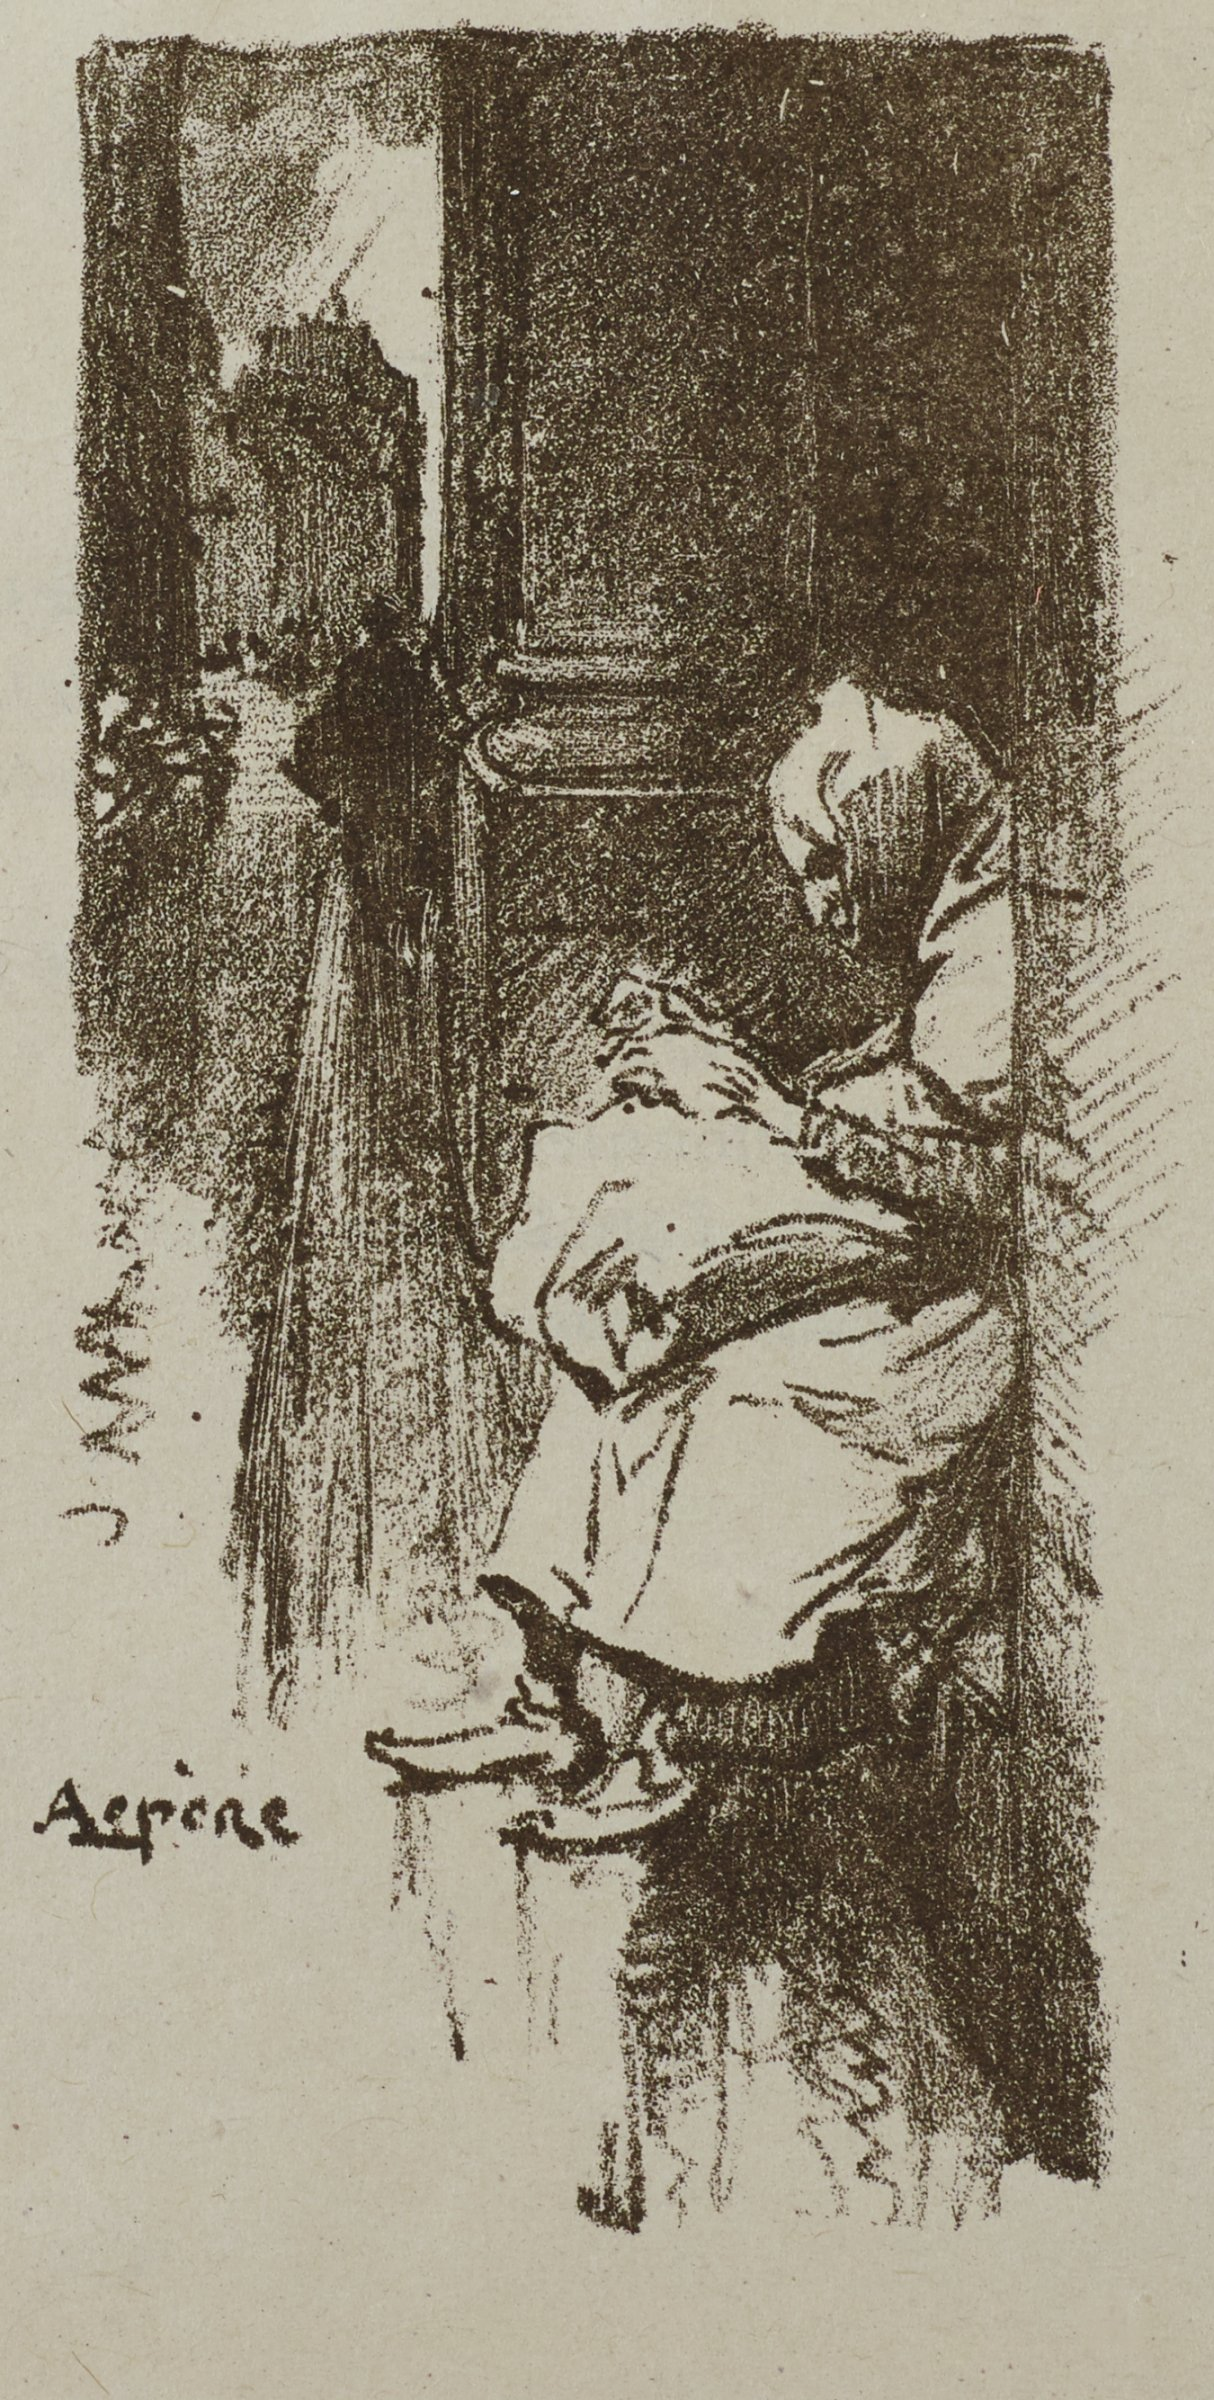 A woman sits in an alley holding a small child.